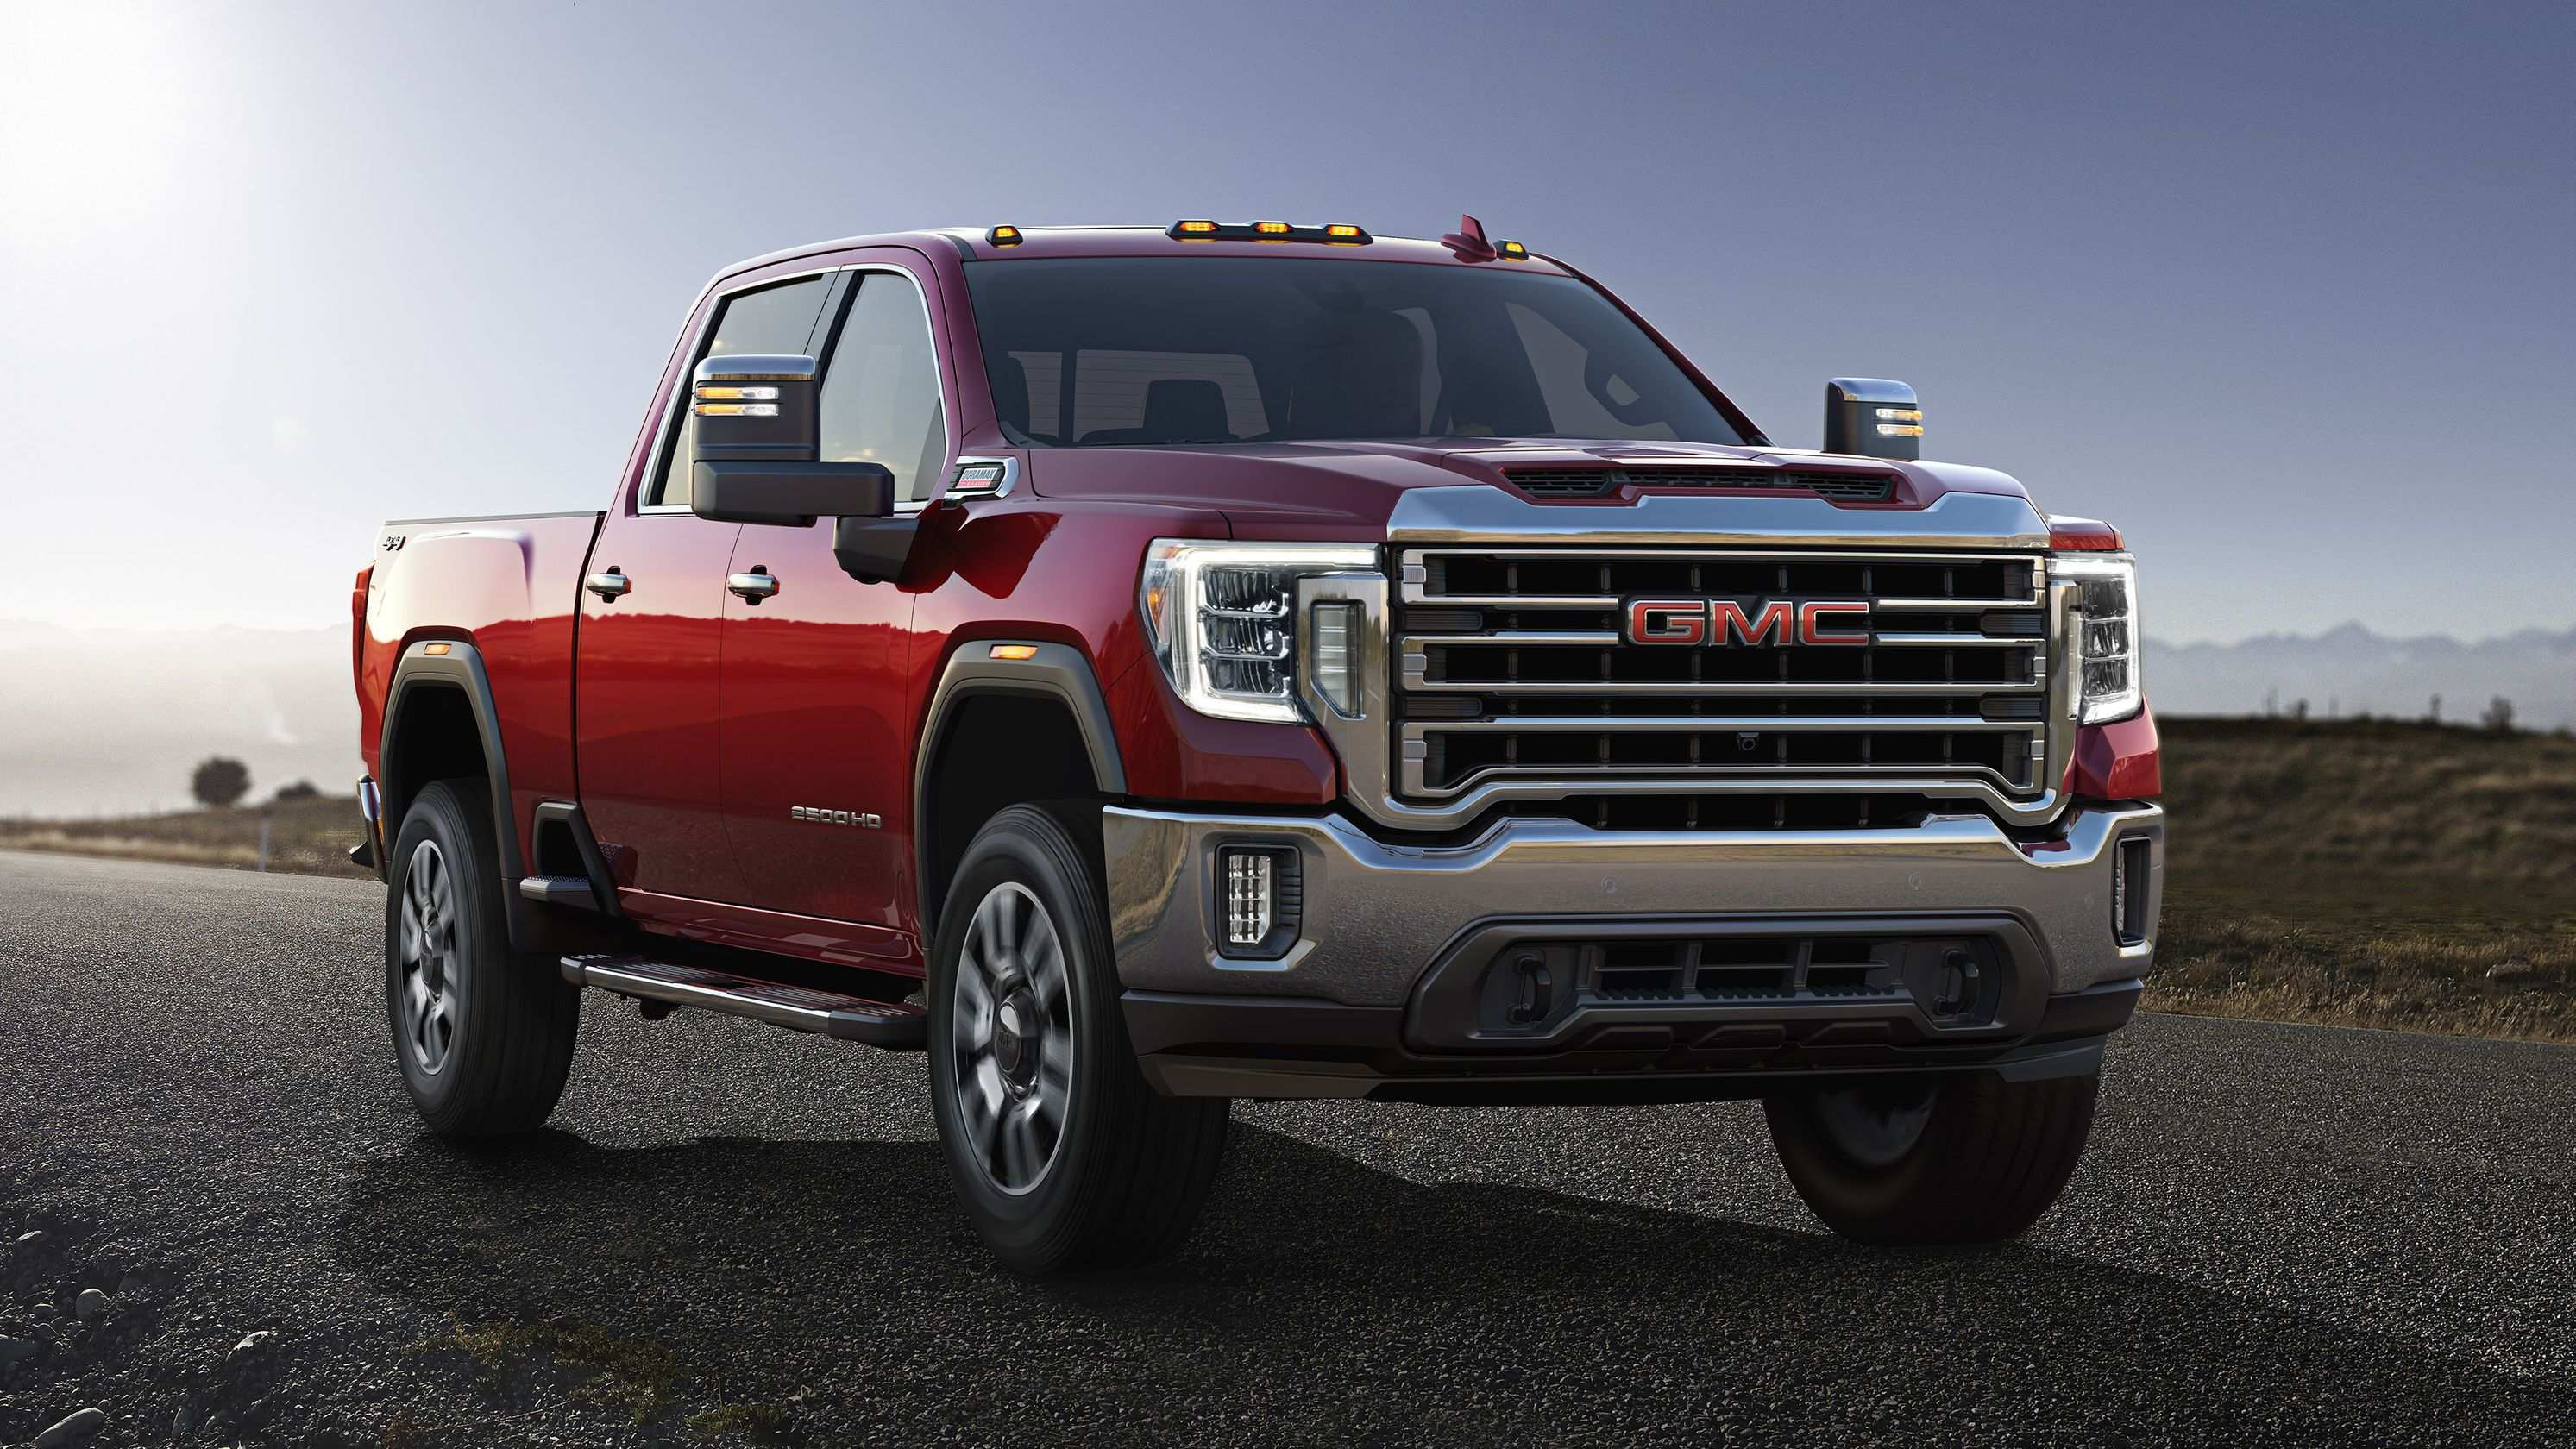 35 New 2020 Gmc Truck Model with 2020 Gmc Truck